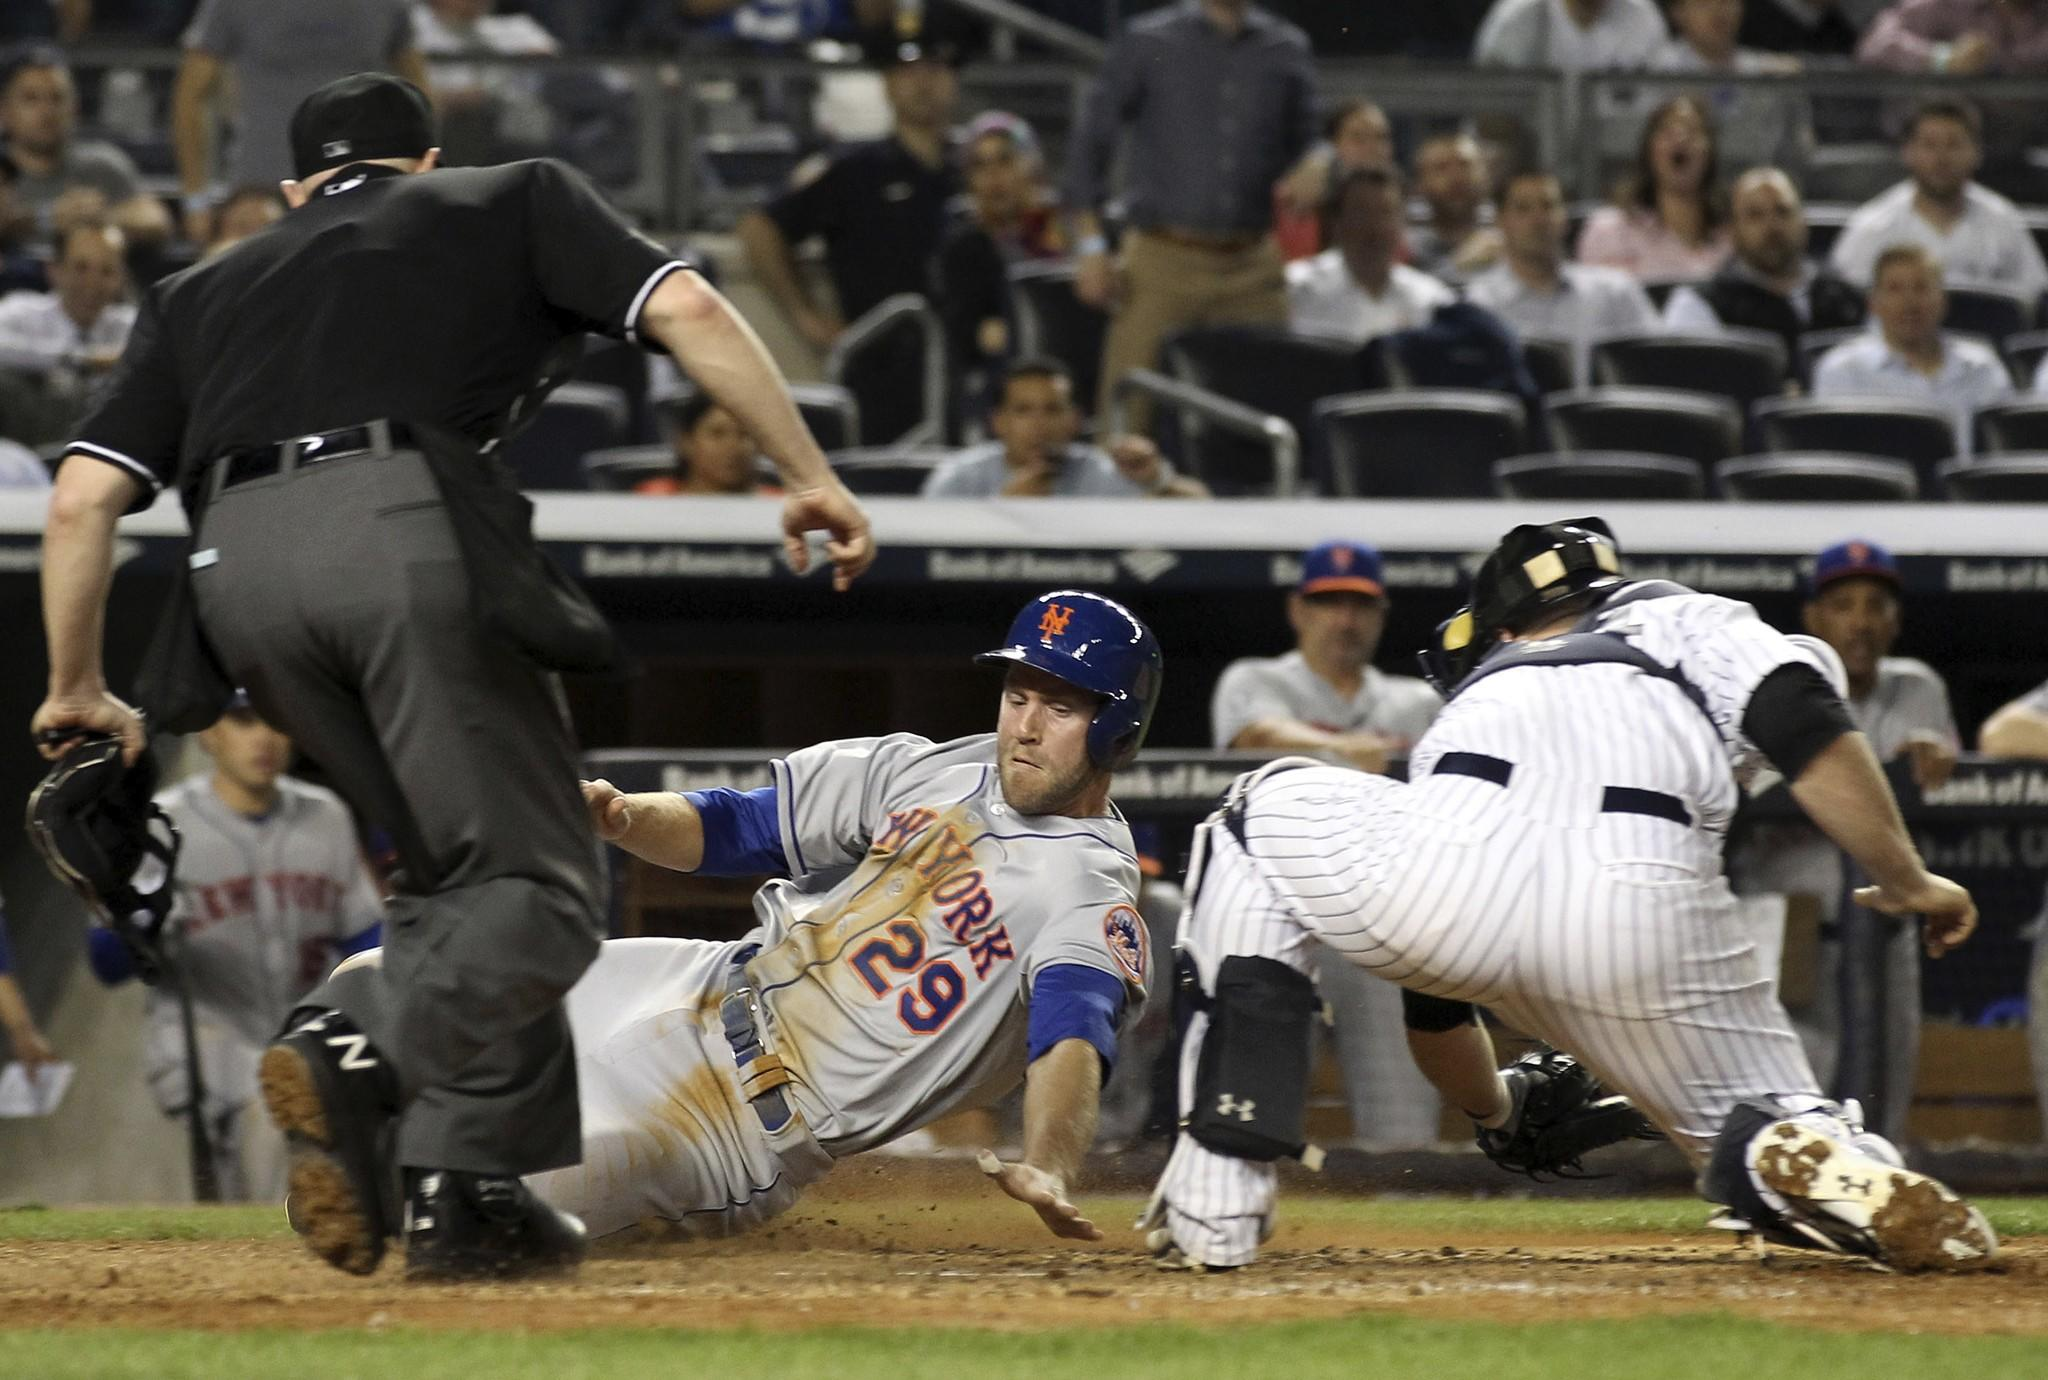 New York Mets first baseman Eric Campbell (29) scores before the tag by New York Yankees catcher Brian McCann (34) in front of home plate umpire Mike Estabrook (83) during the eighth inning at Yankee Stadium.